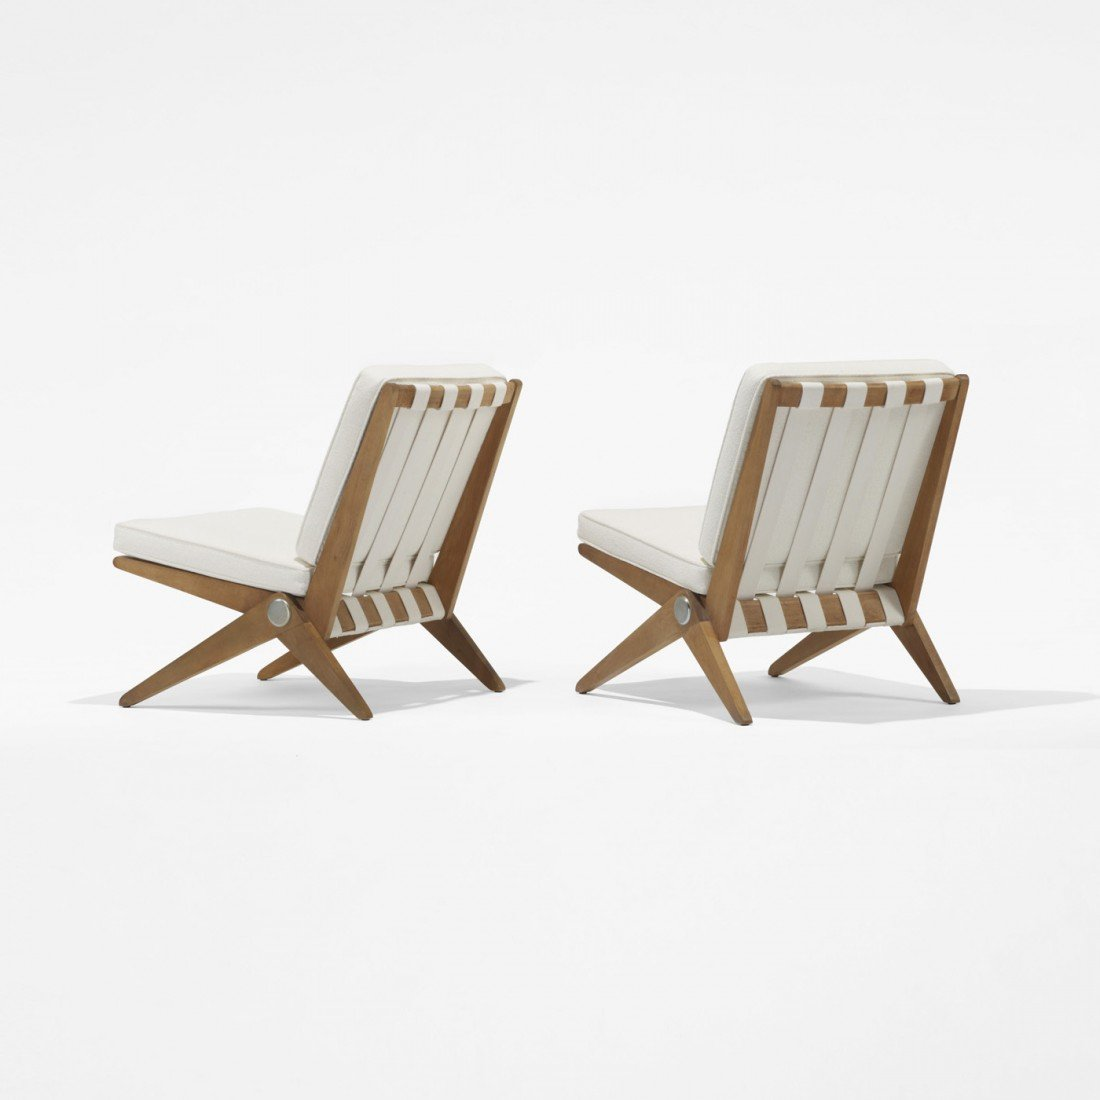 148: Pierre Jeanneret Scissor chairs, pair